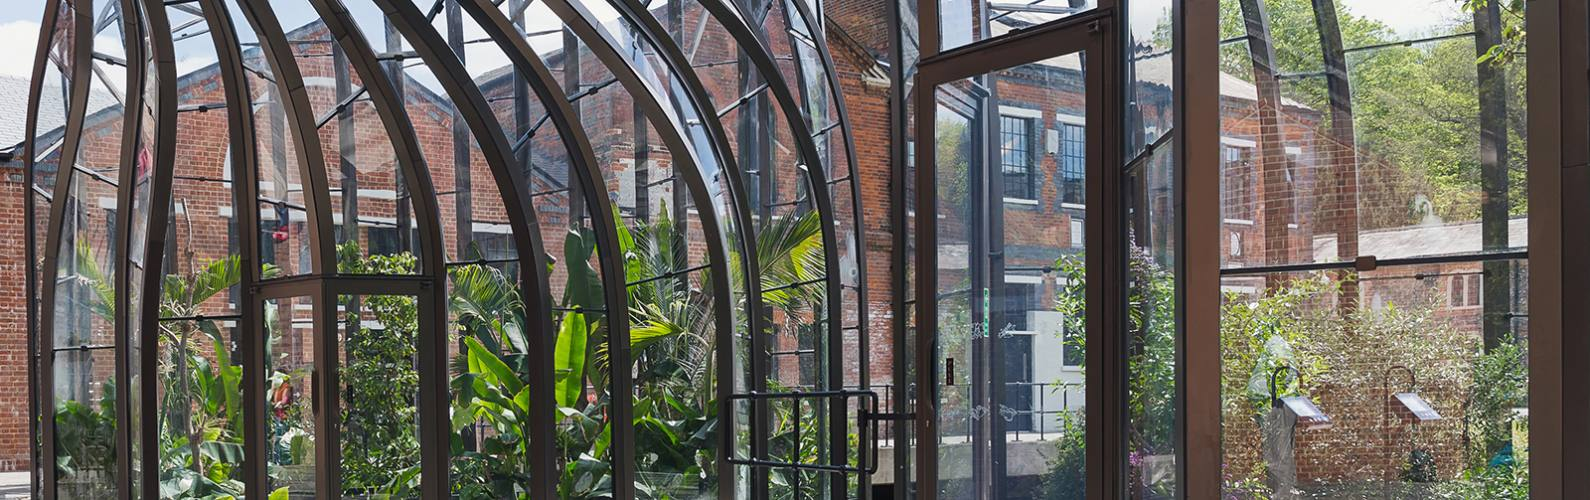 Can you guess the purpose of these eco glasshouses?